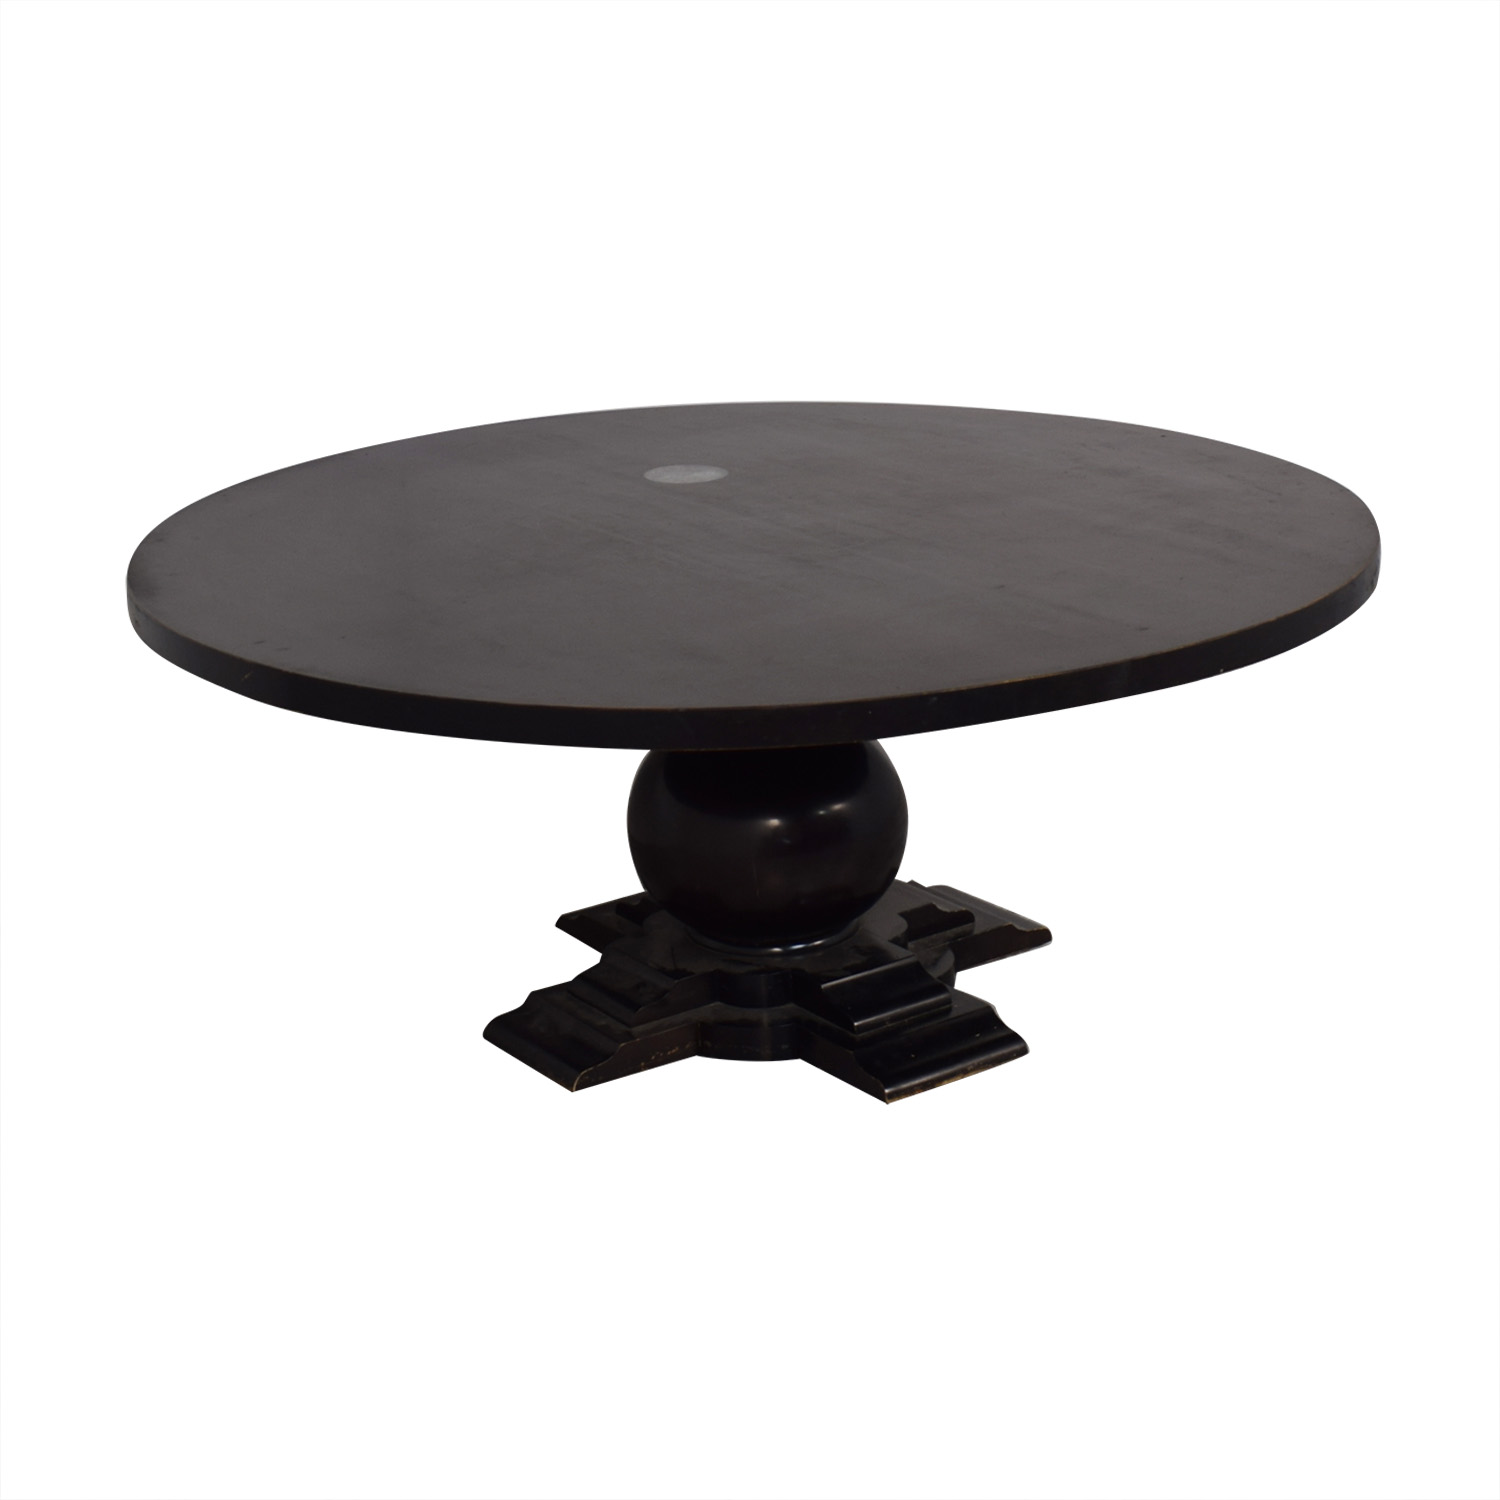 shop Crate & Barrel Round Dinner Table Crate & Barrel Tables